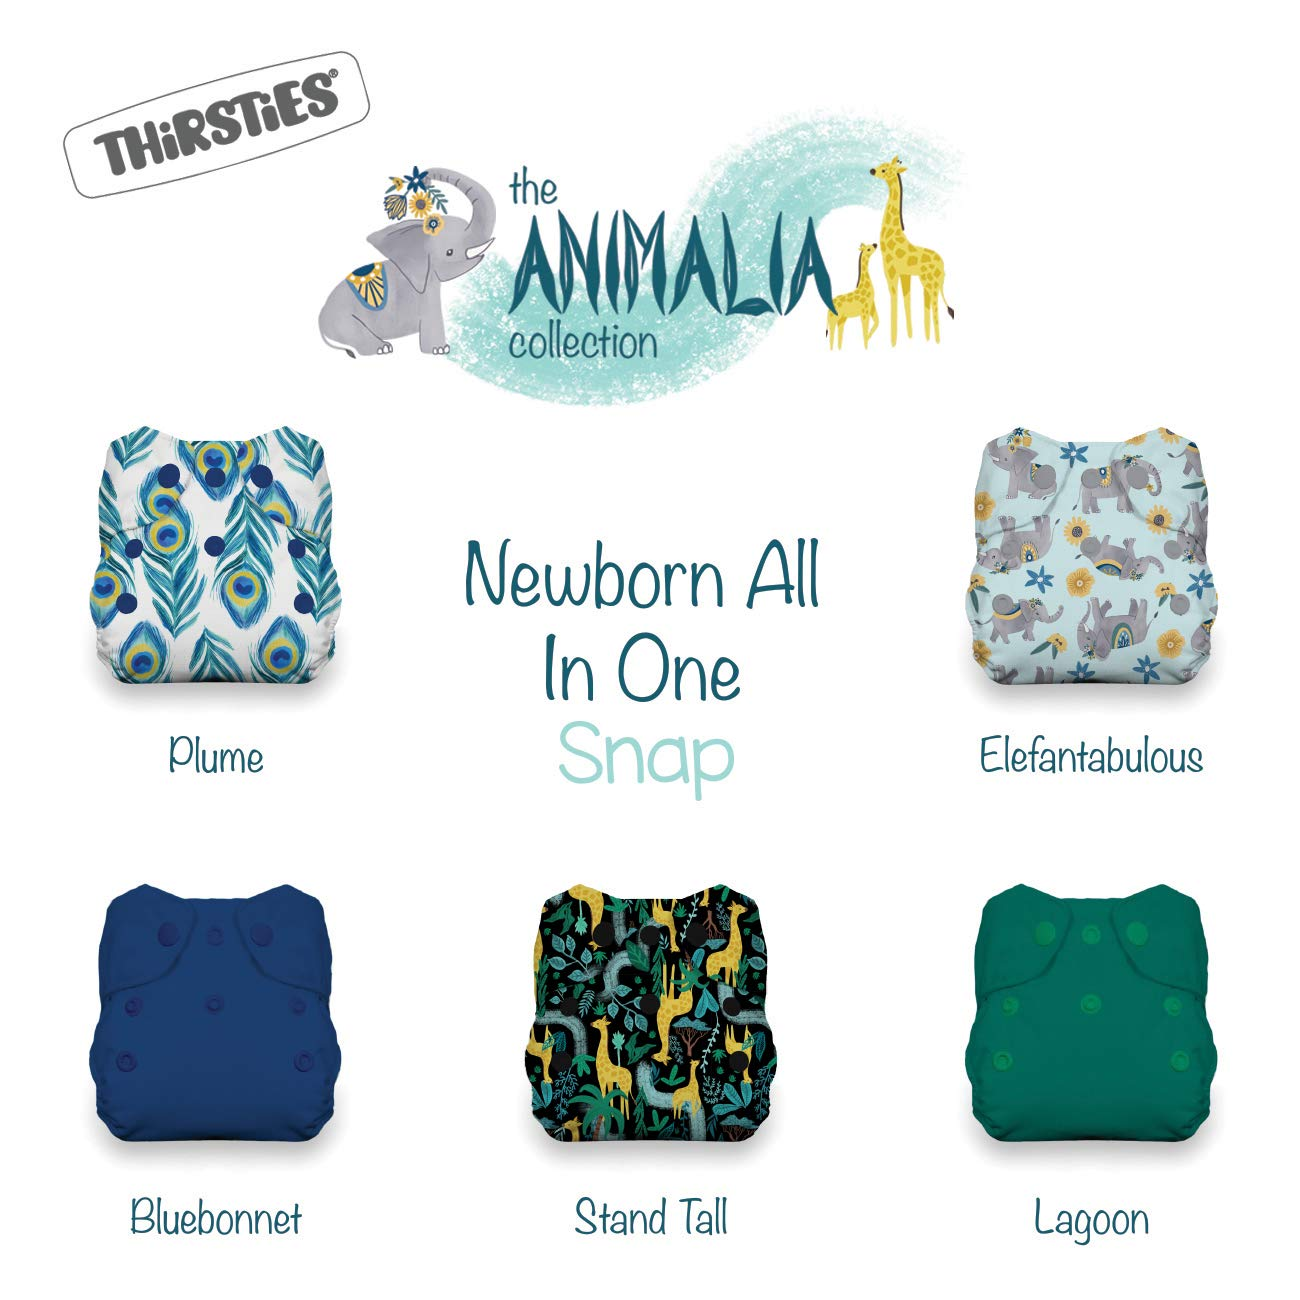 Thirsties Animalia Cloth Diaper Collection Package, Snap Newborn All in One Cloth Diaper, Animalia by Thirsties (Image #1)